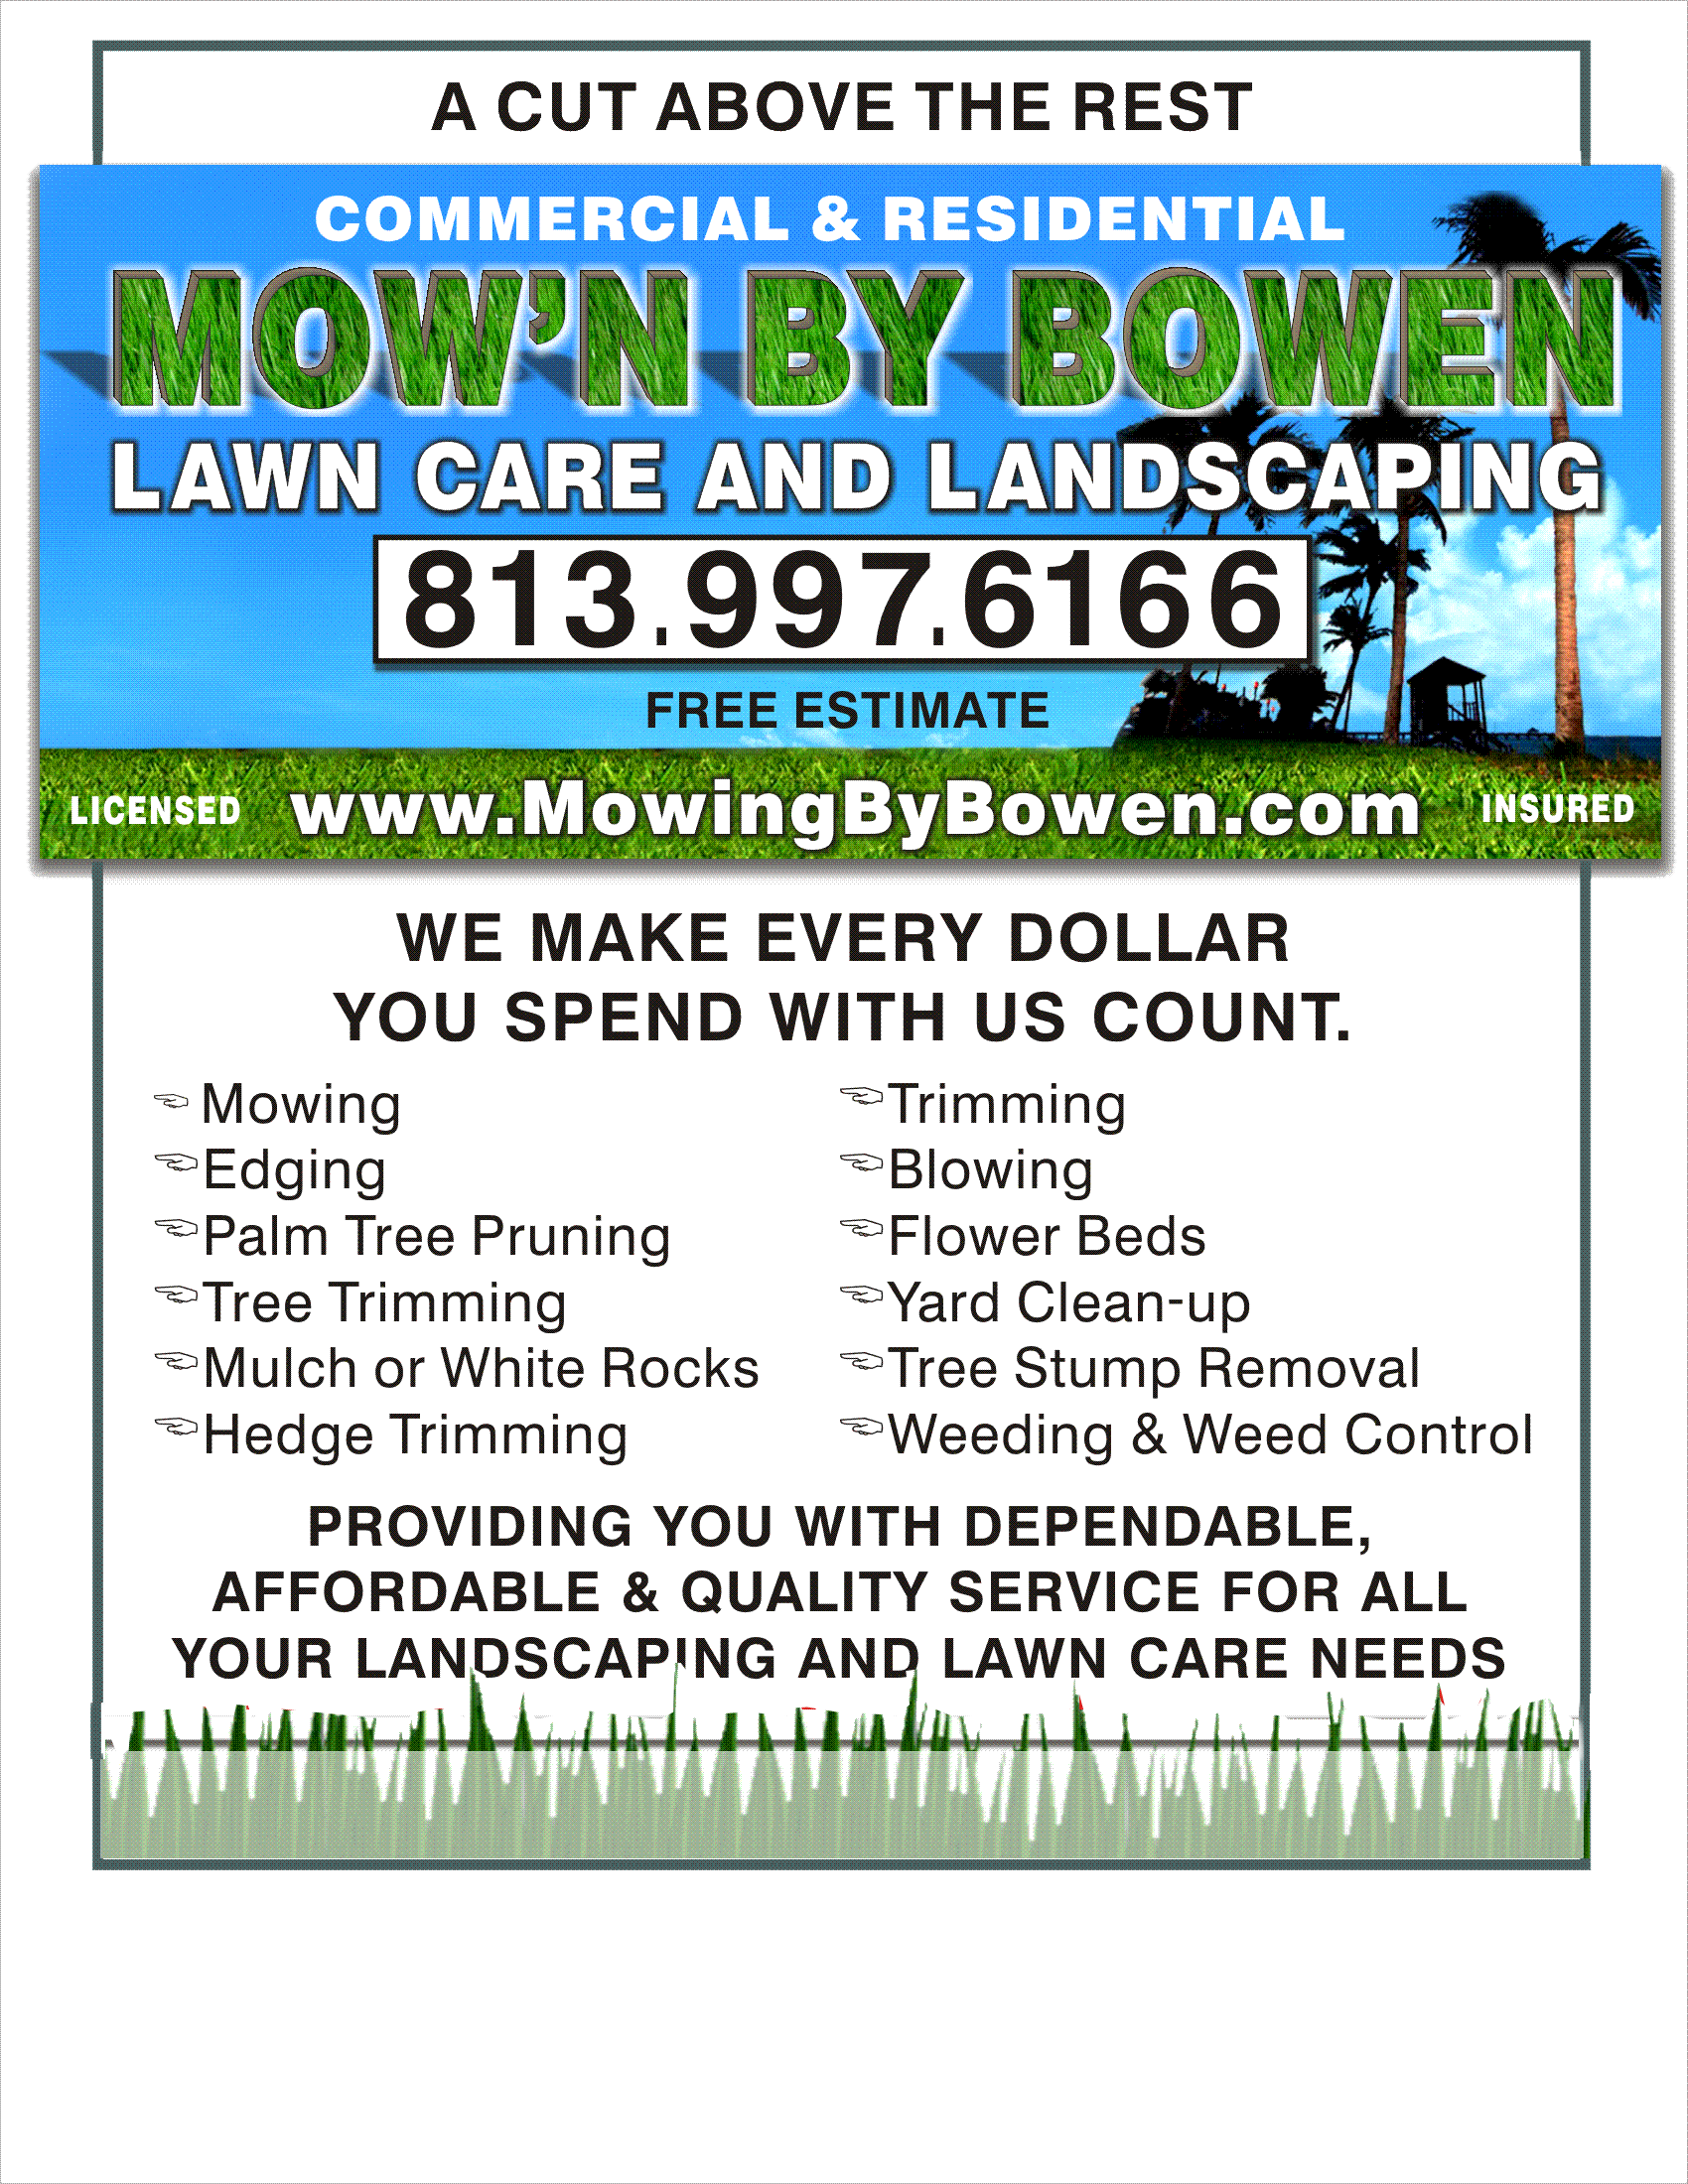 Lawn care advertising ideas -  Lawn Care Flyer Template By Here Is My Collection Marketing Ideas For Landscaping